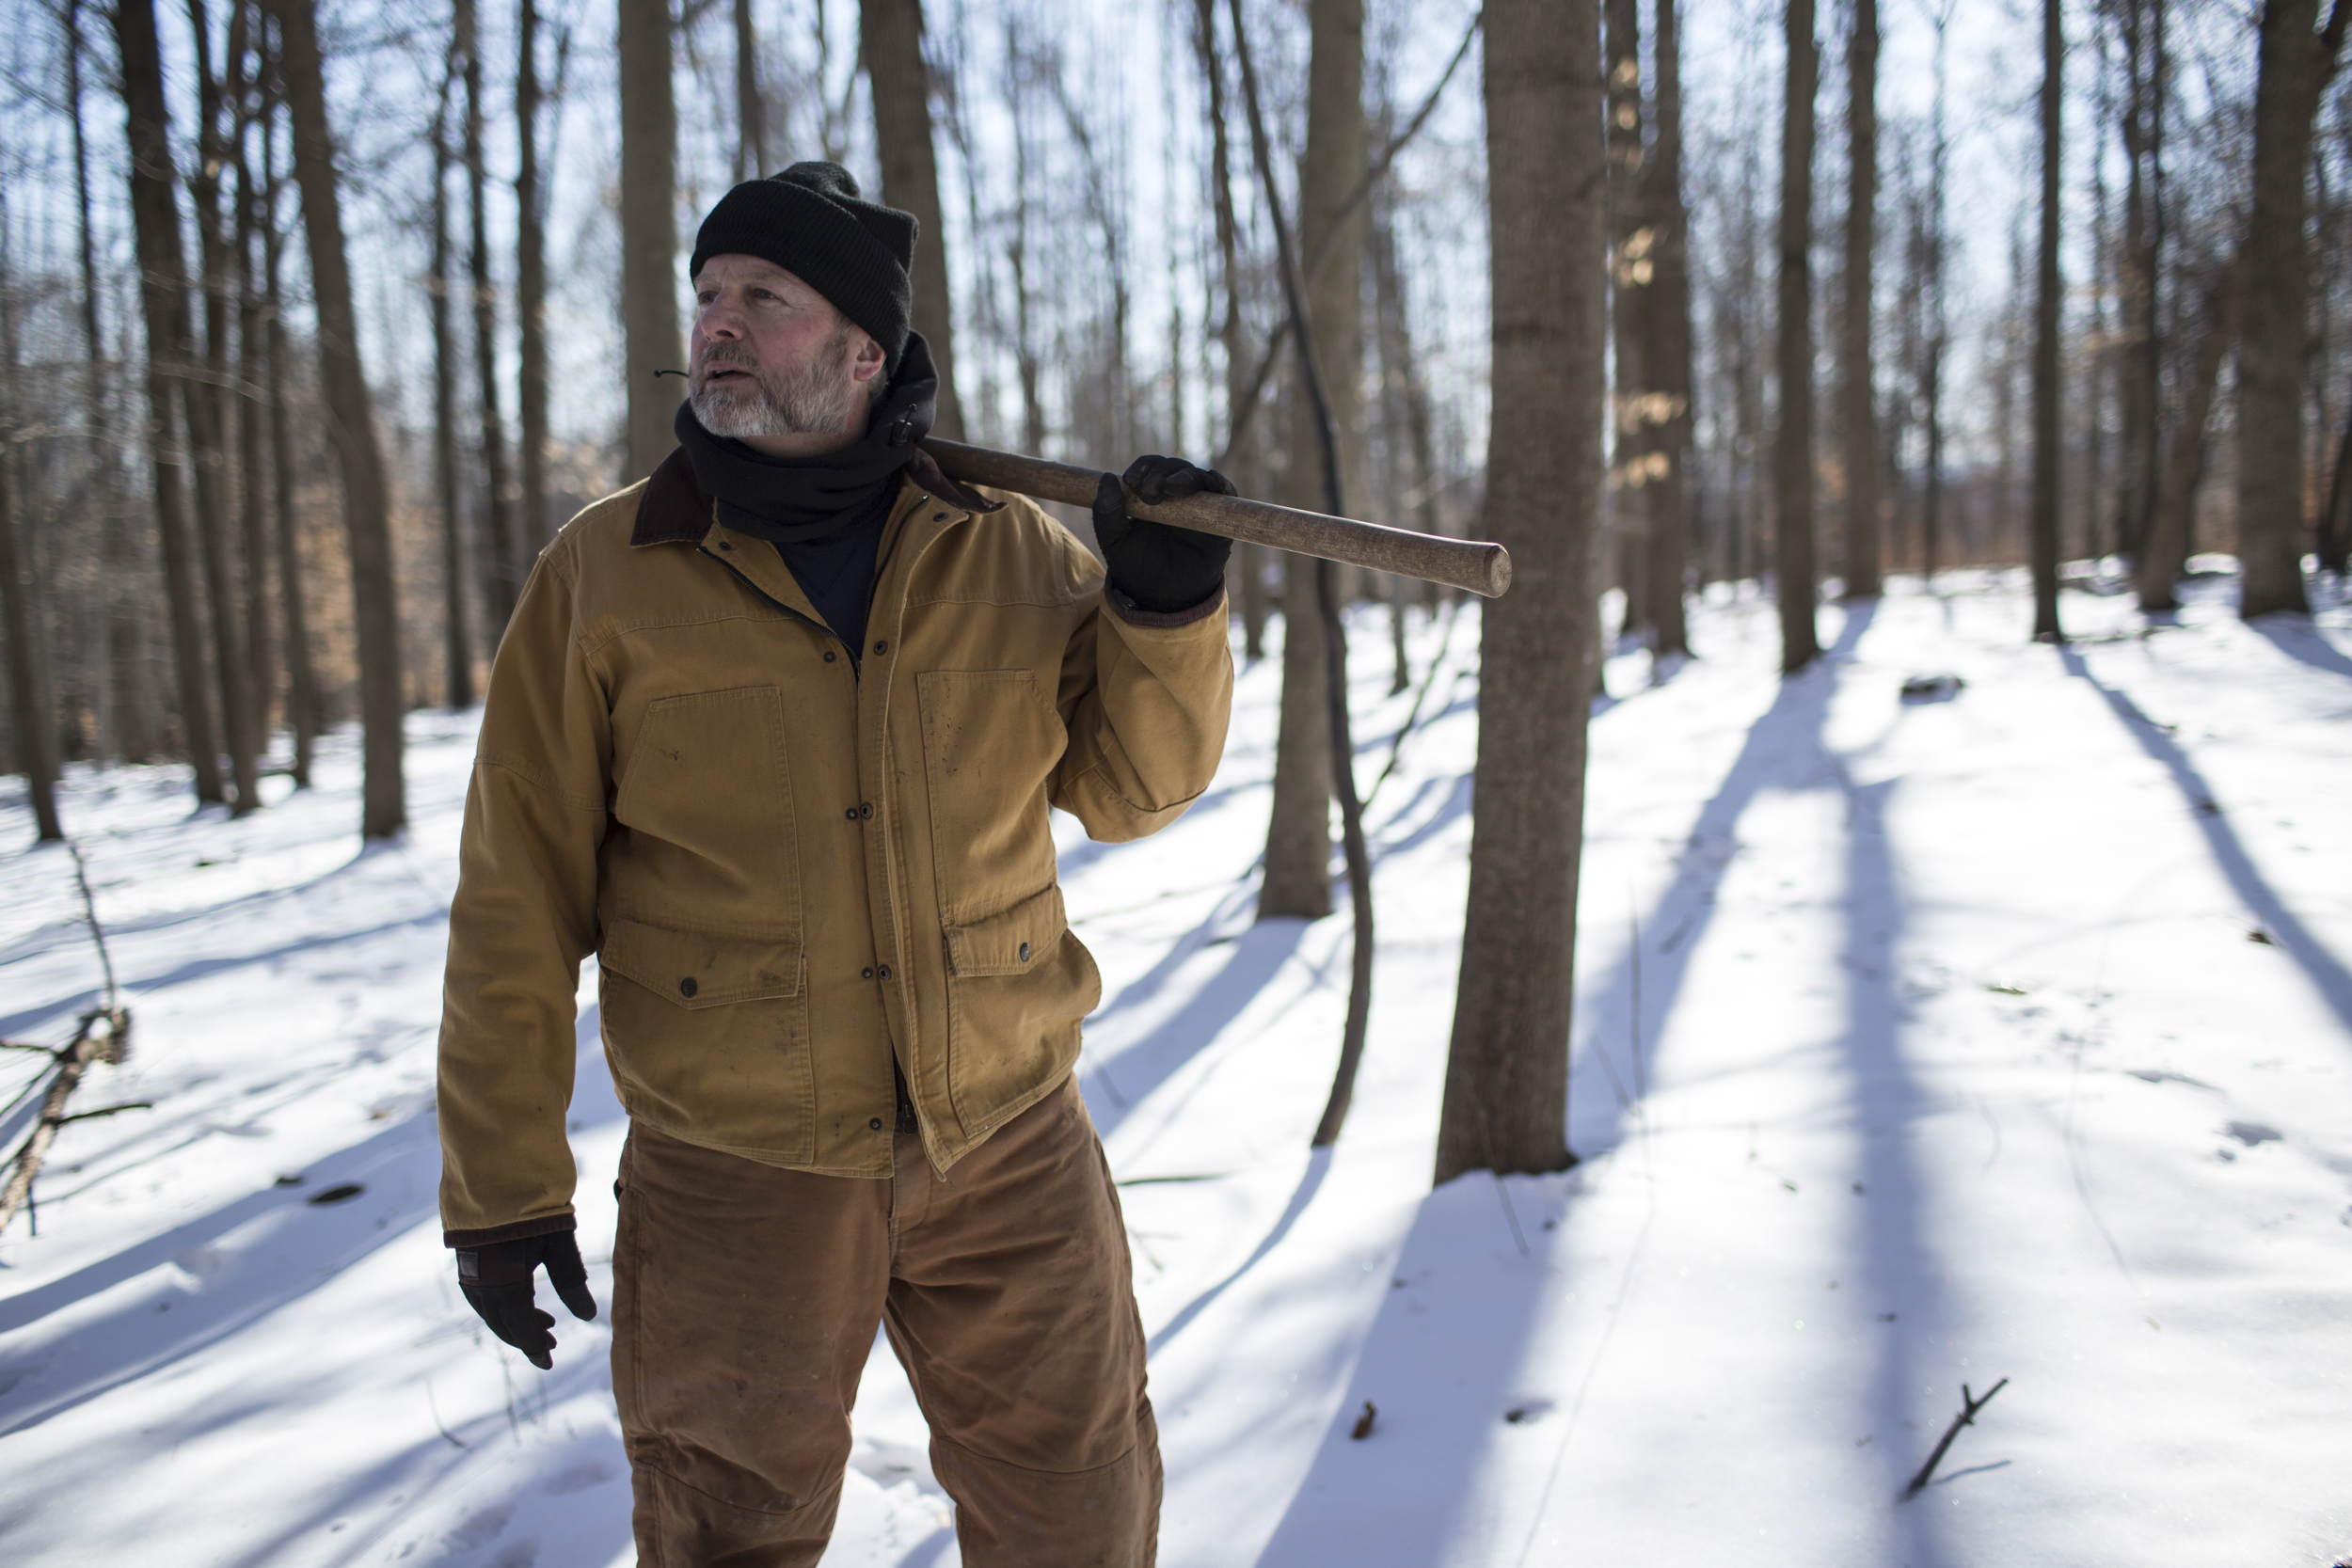 Barry Howe waits during a tree planting session to re-vitilize a hunting area, near Indian Springs, Maryland.